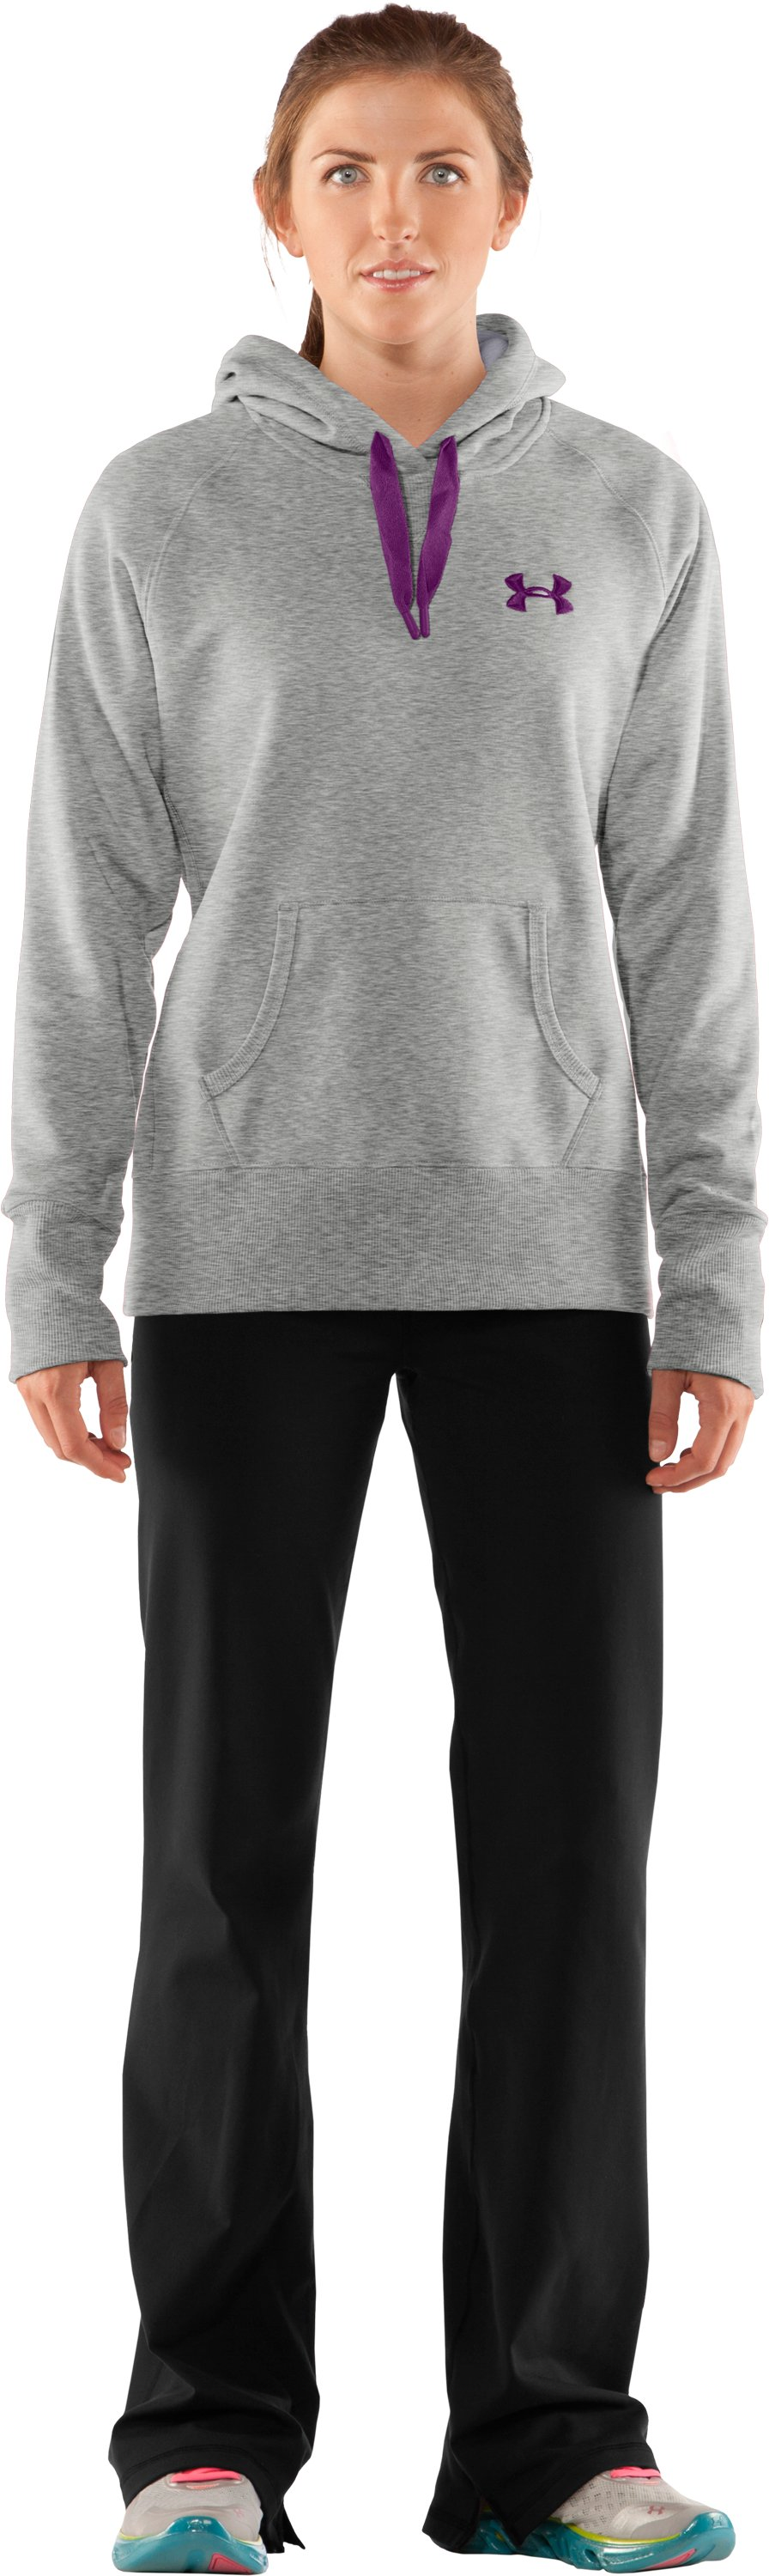 Women's Charged Cotton® Storm Hoodie, Silver Heather, Front